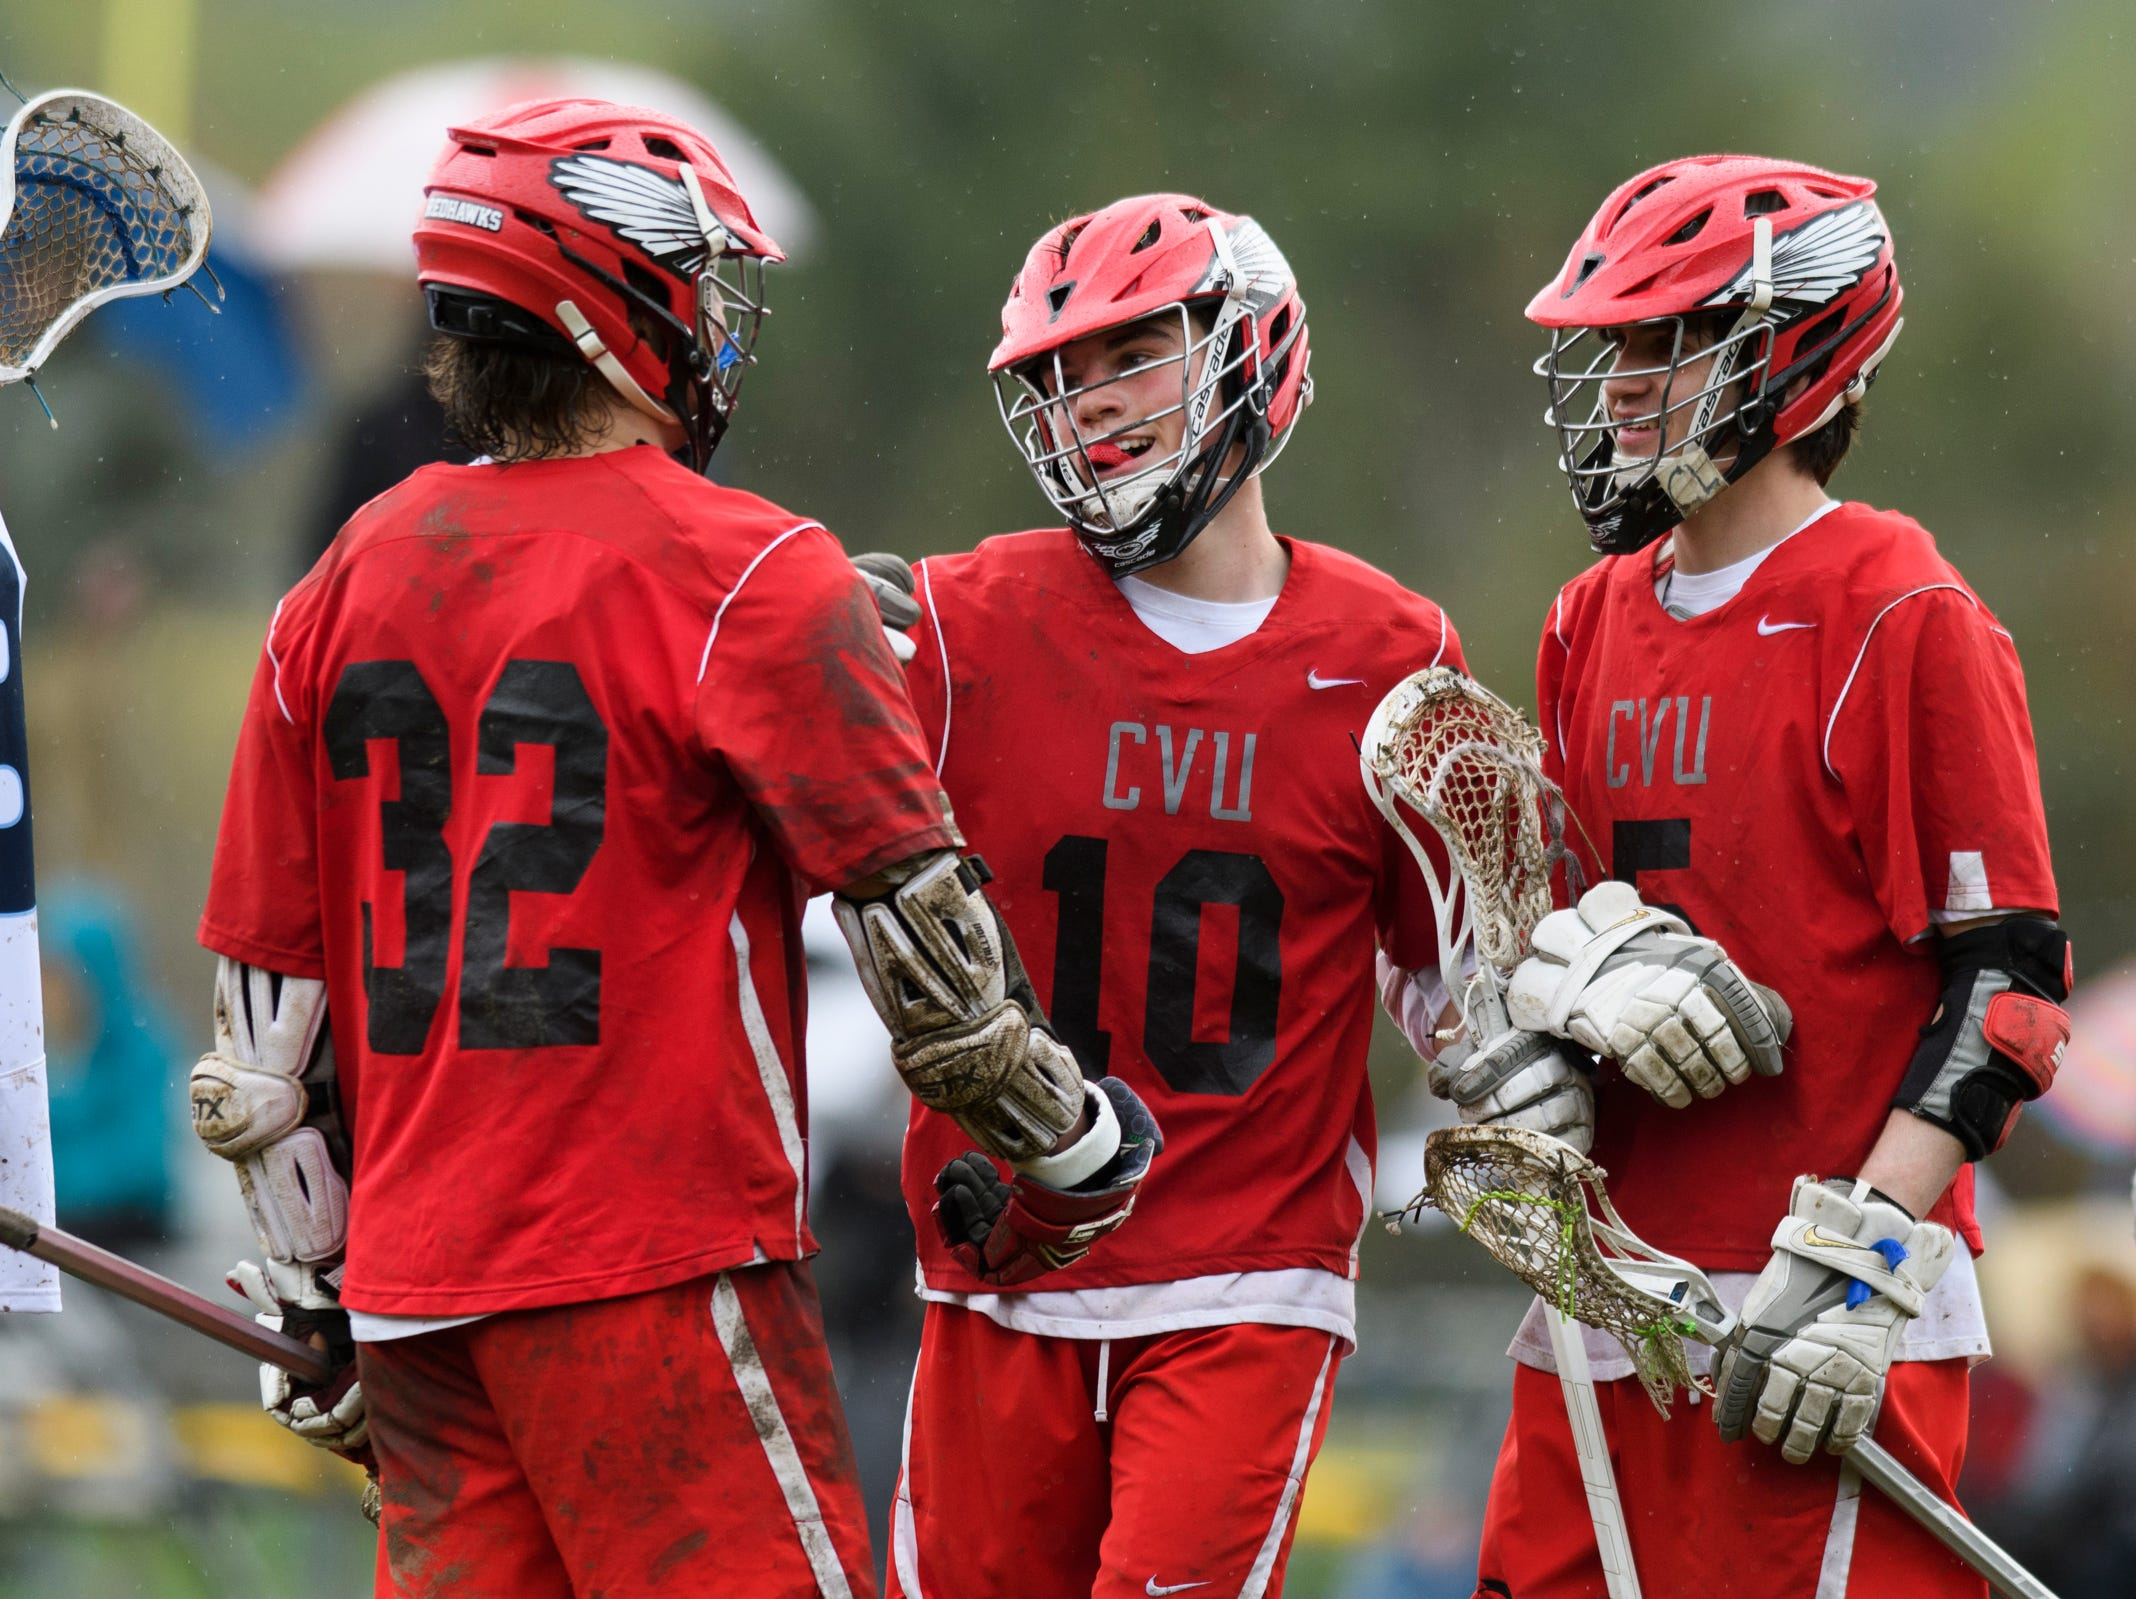 CVU's Max Gorman (10) celebrates a goal with Jake Schaefer (5) and James Bernicke (32) during the boys lacrosse game between the Champlain Valley Union Redhawks and the Mount Mansfield Cougars at MMU High School on Tuesday afternoon May 14, 2019 in Jericho, Vermont.